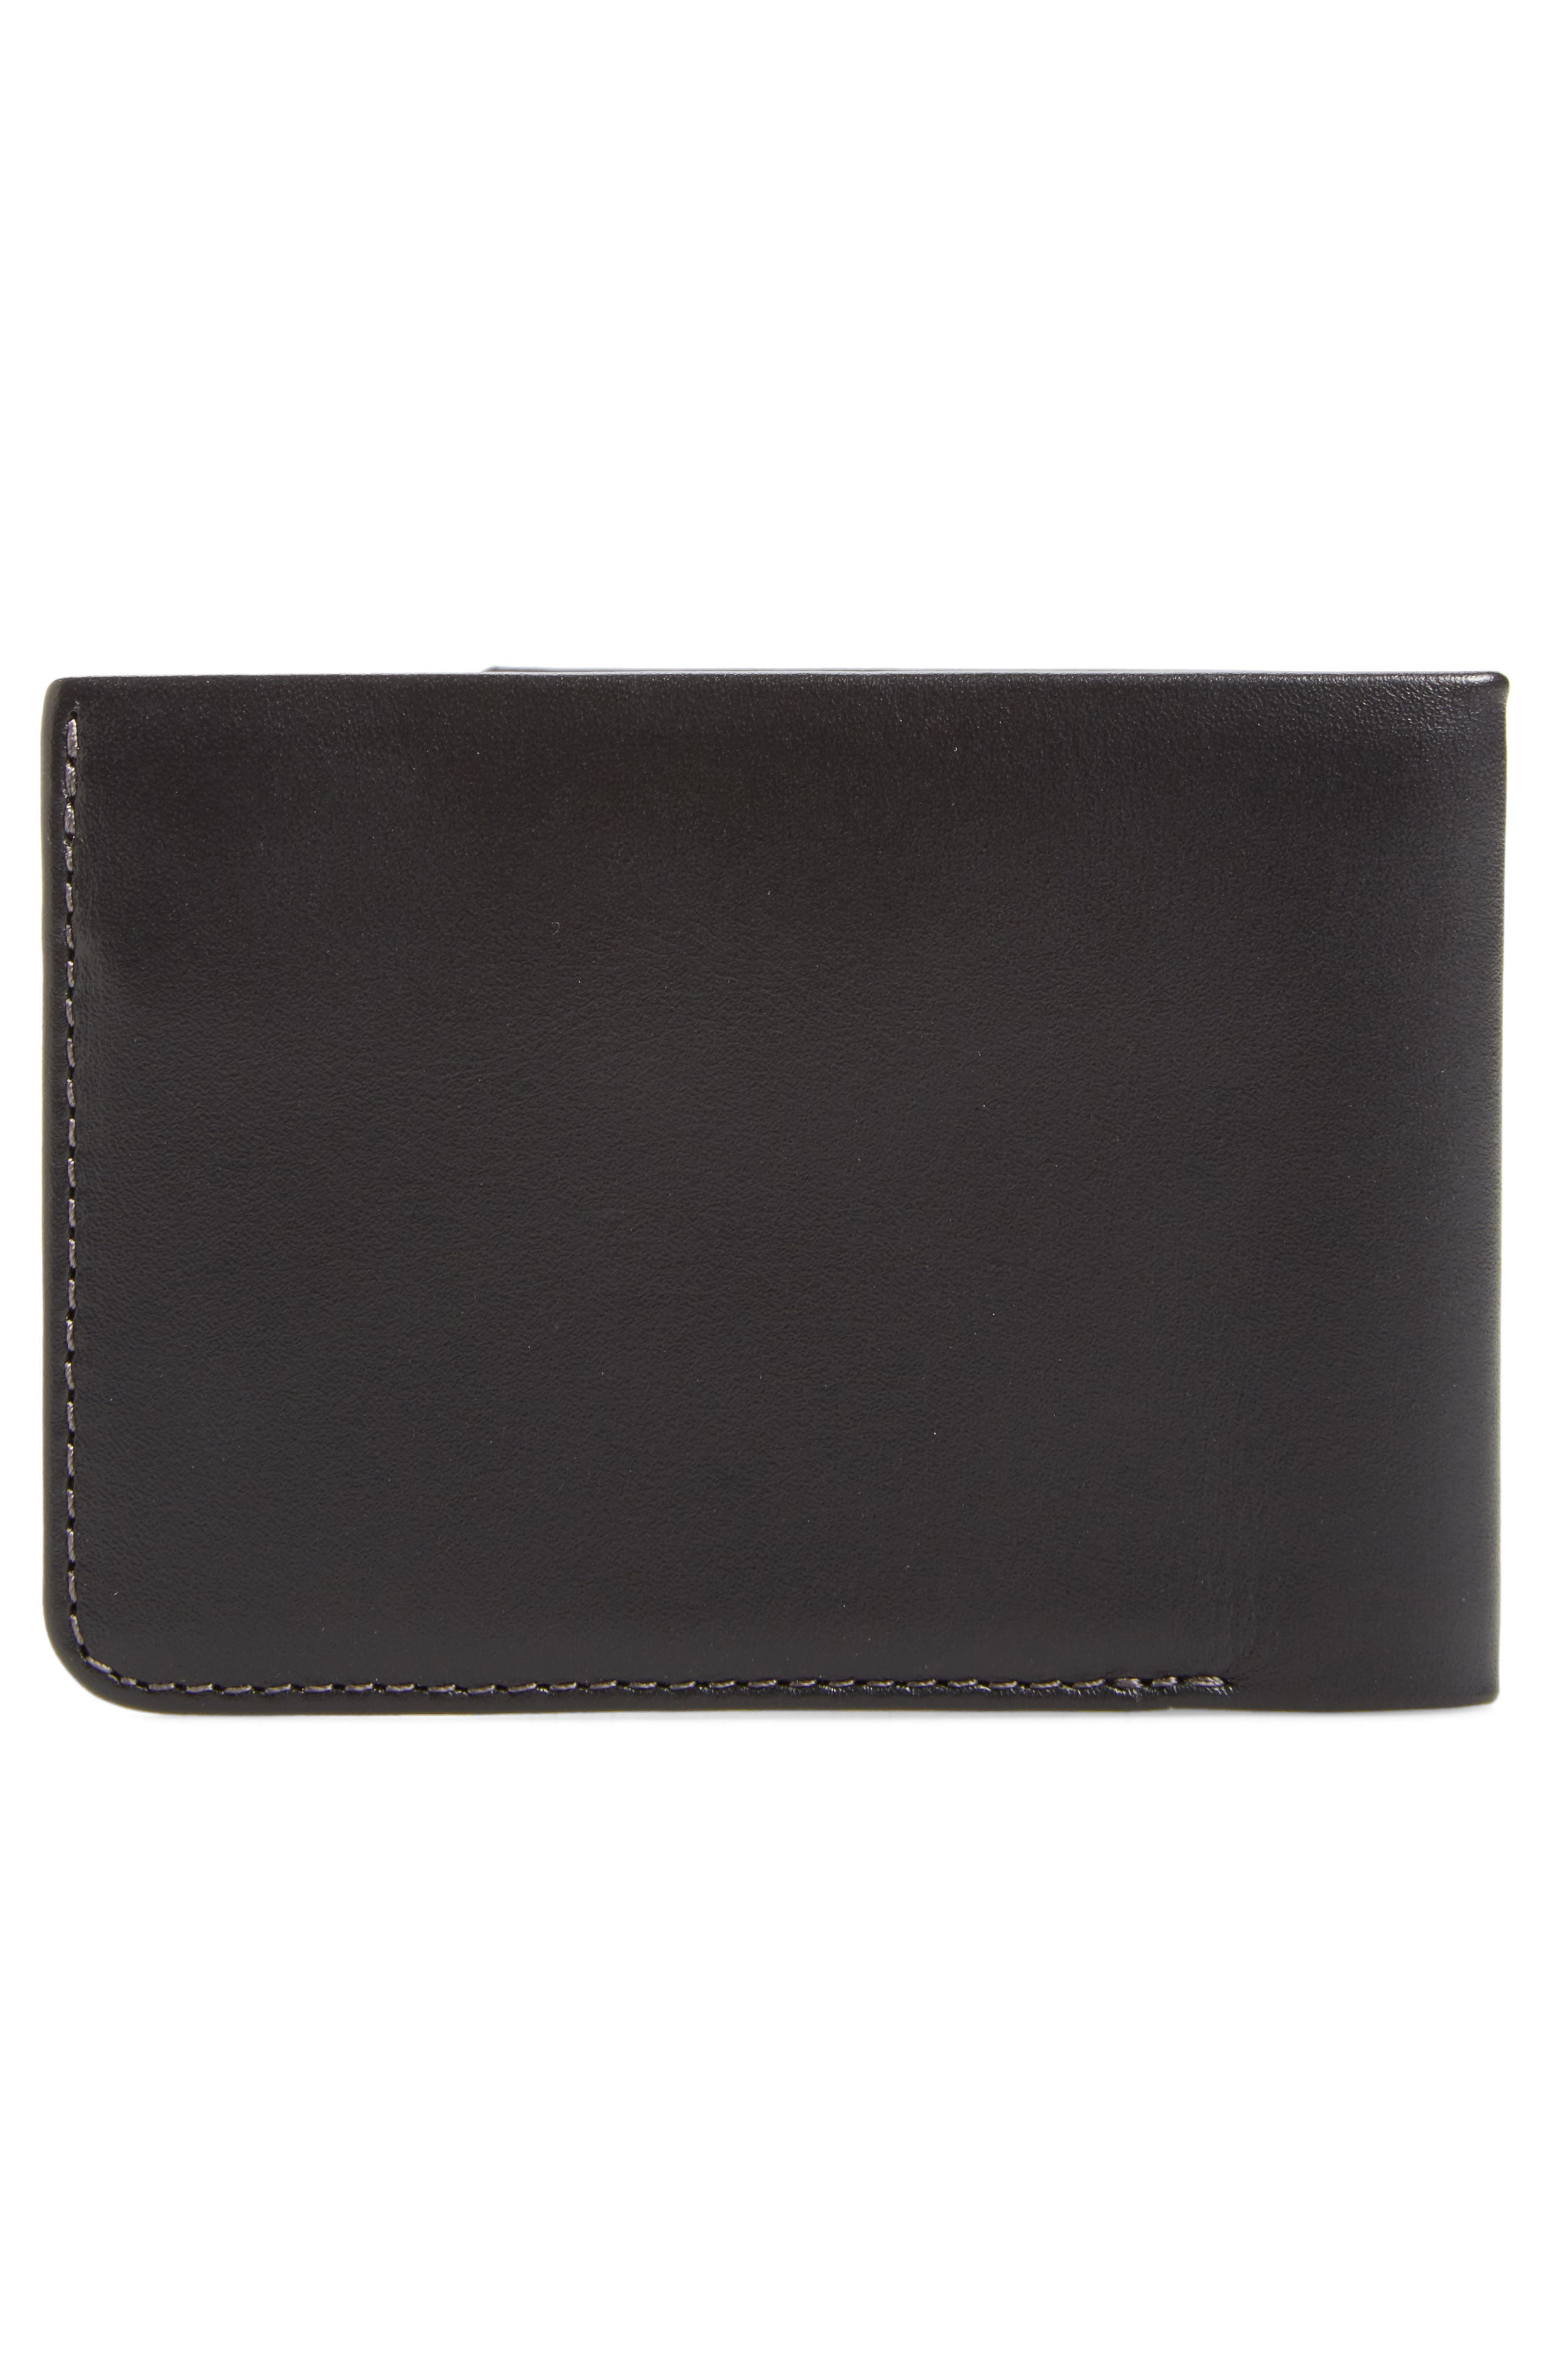 Low Down Leather Wallet,                             Alternate thumbnail 3, color,                             001